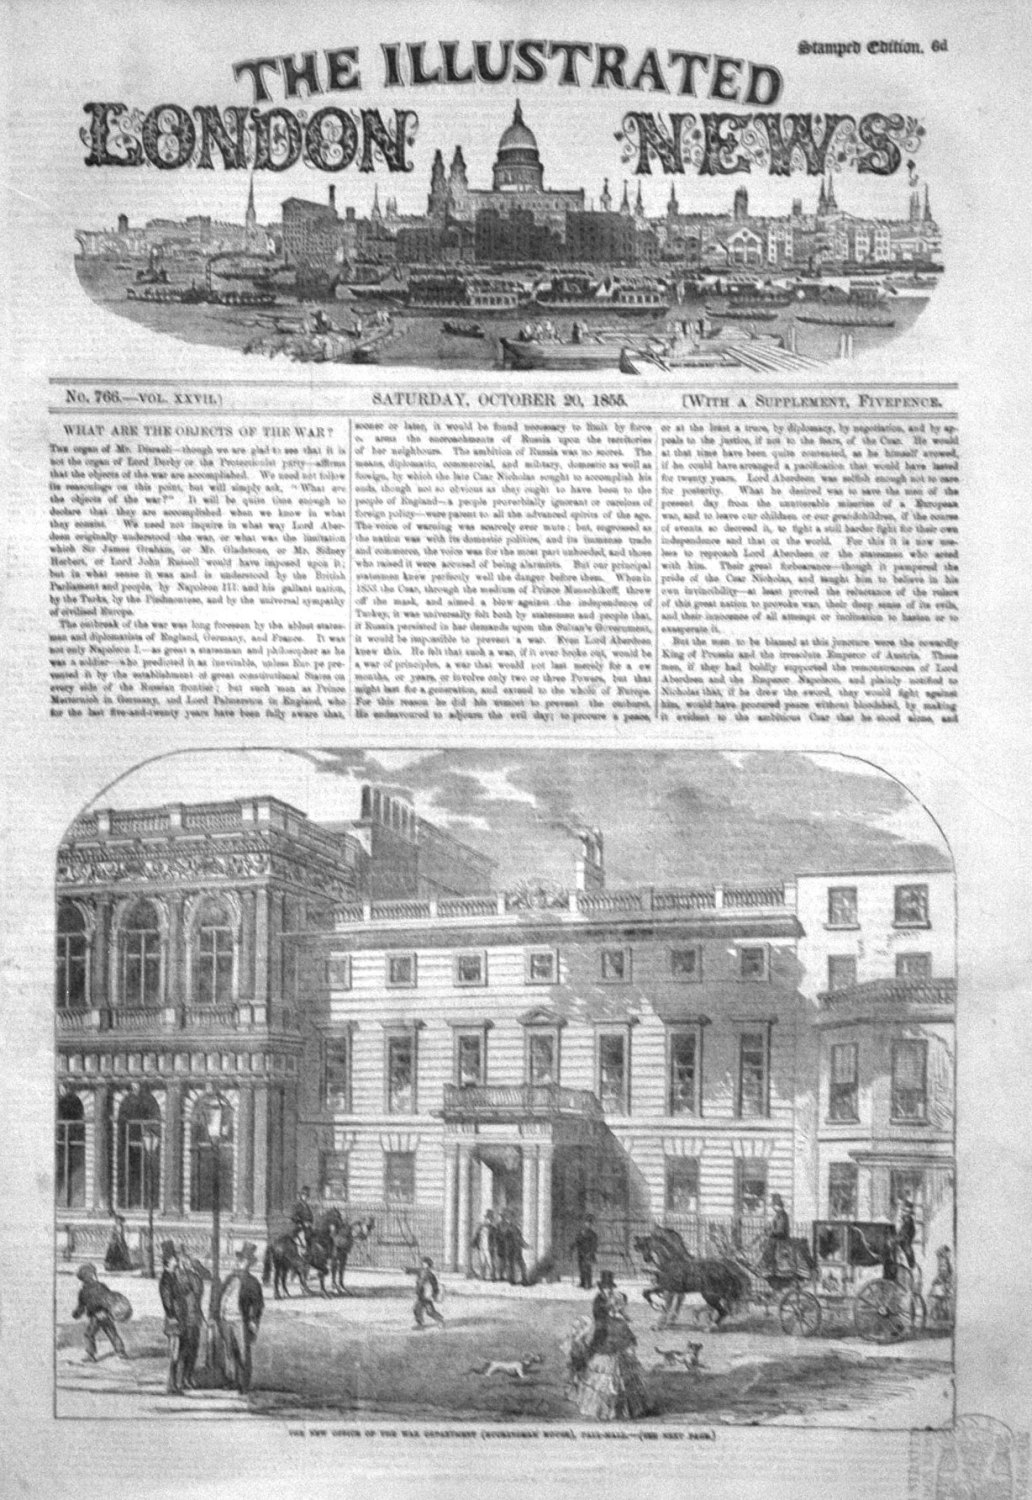 Illustrated London News October 20th 1855.